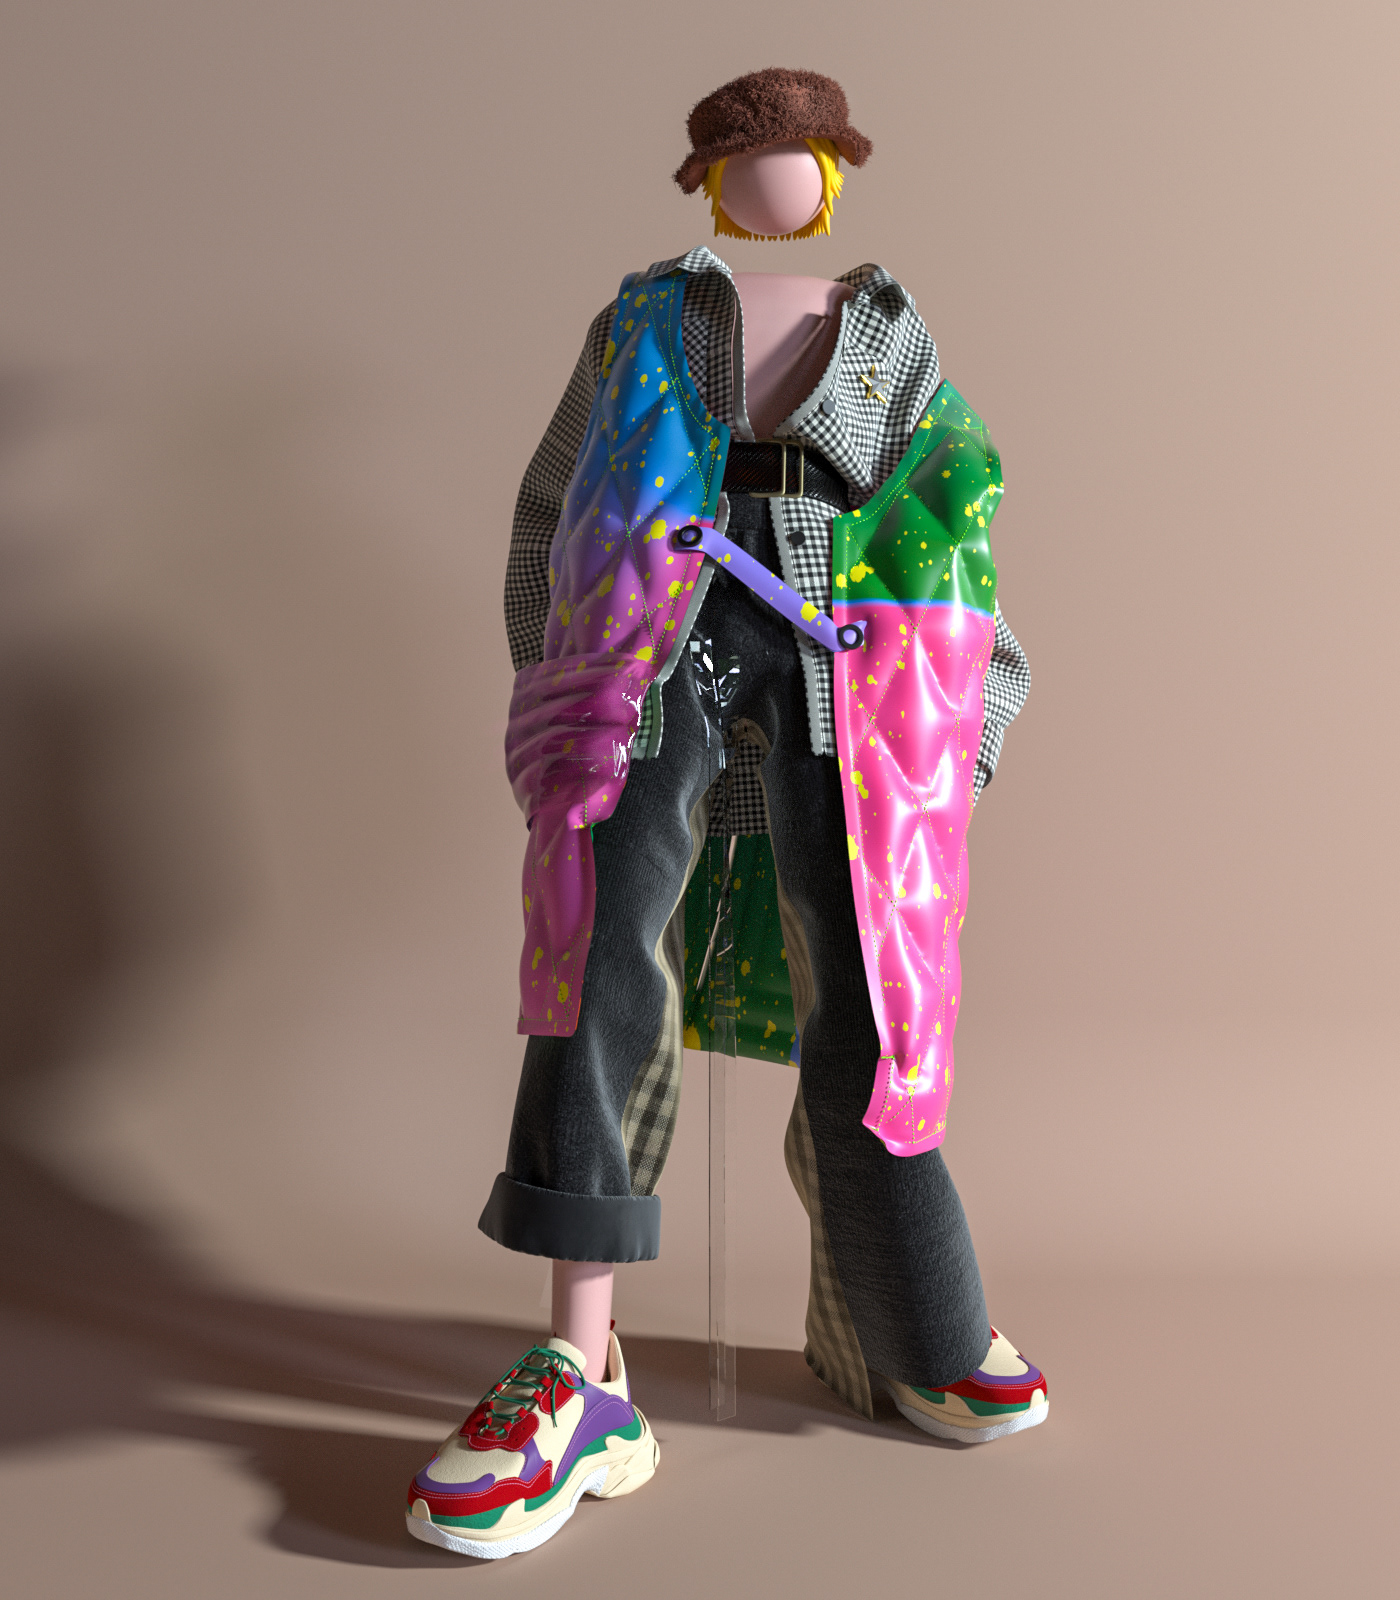 c4d dress Fashion  figure MD mix and match the color